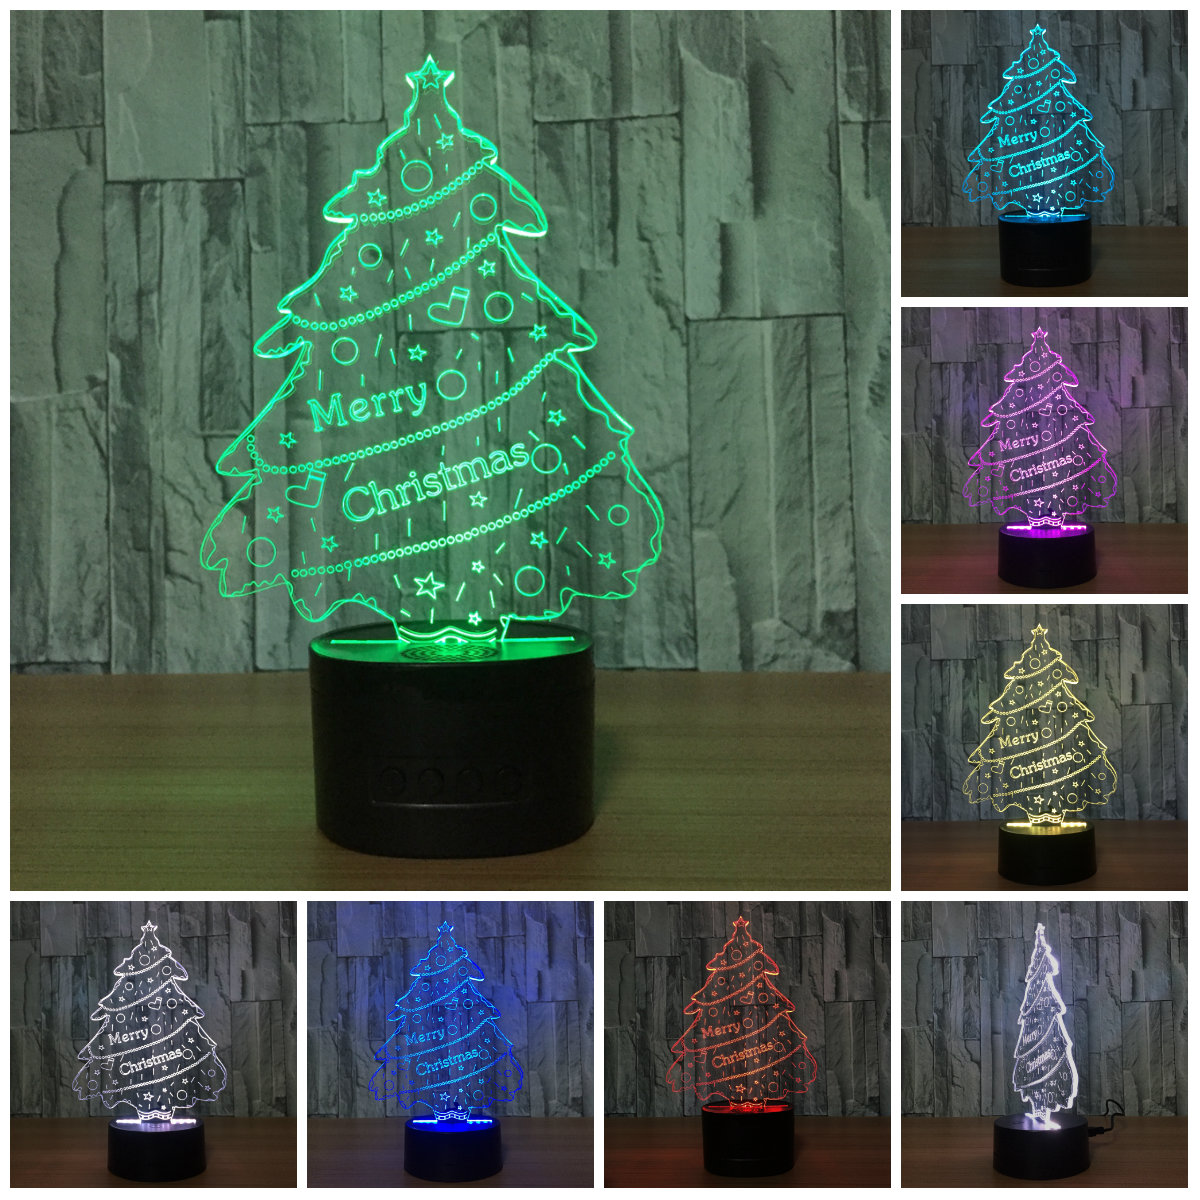 Merry Chrismas Tree Holiday Lighting Xmas LED Night Light Party Decorative USB Desk Tabel Lamp Child Baby Sleep Lamp CE IY803077